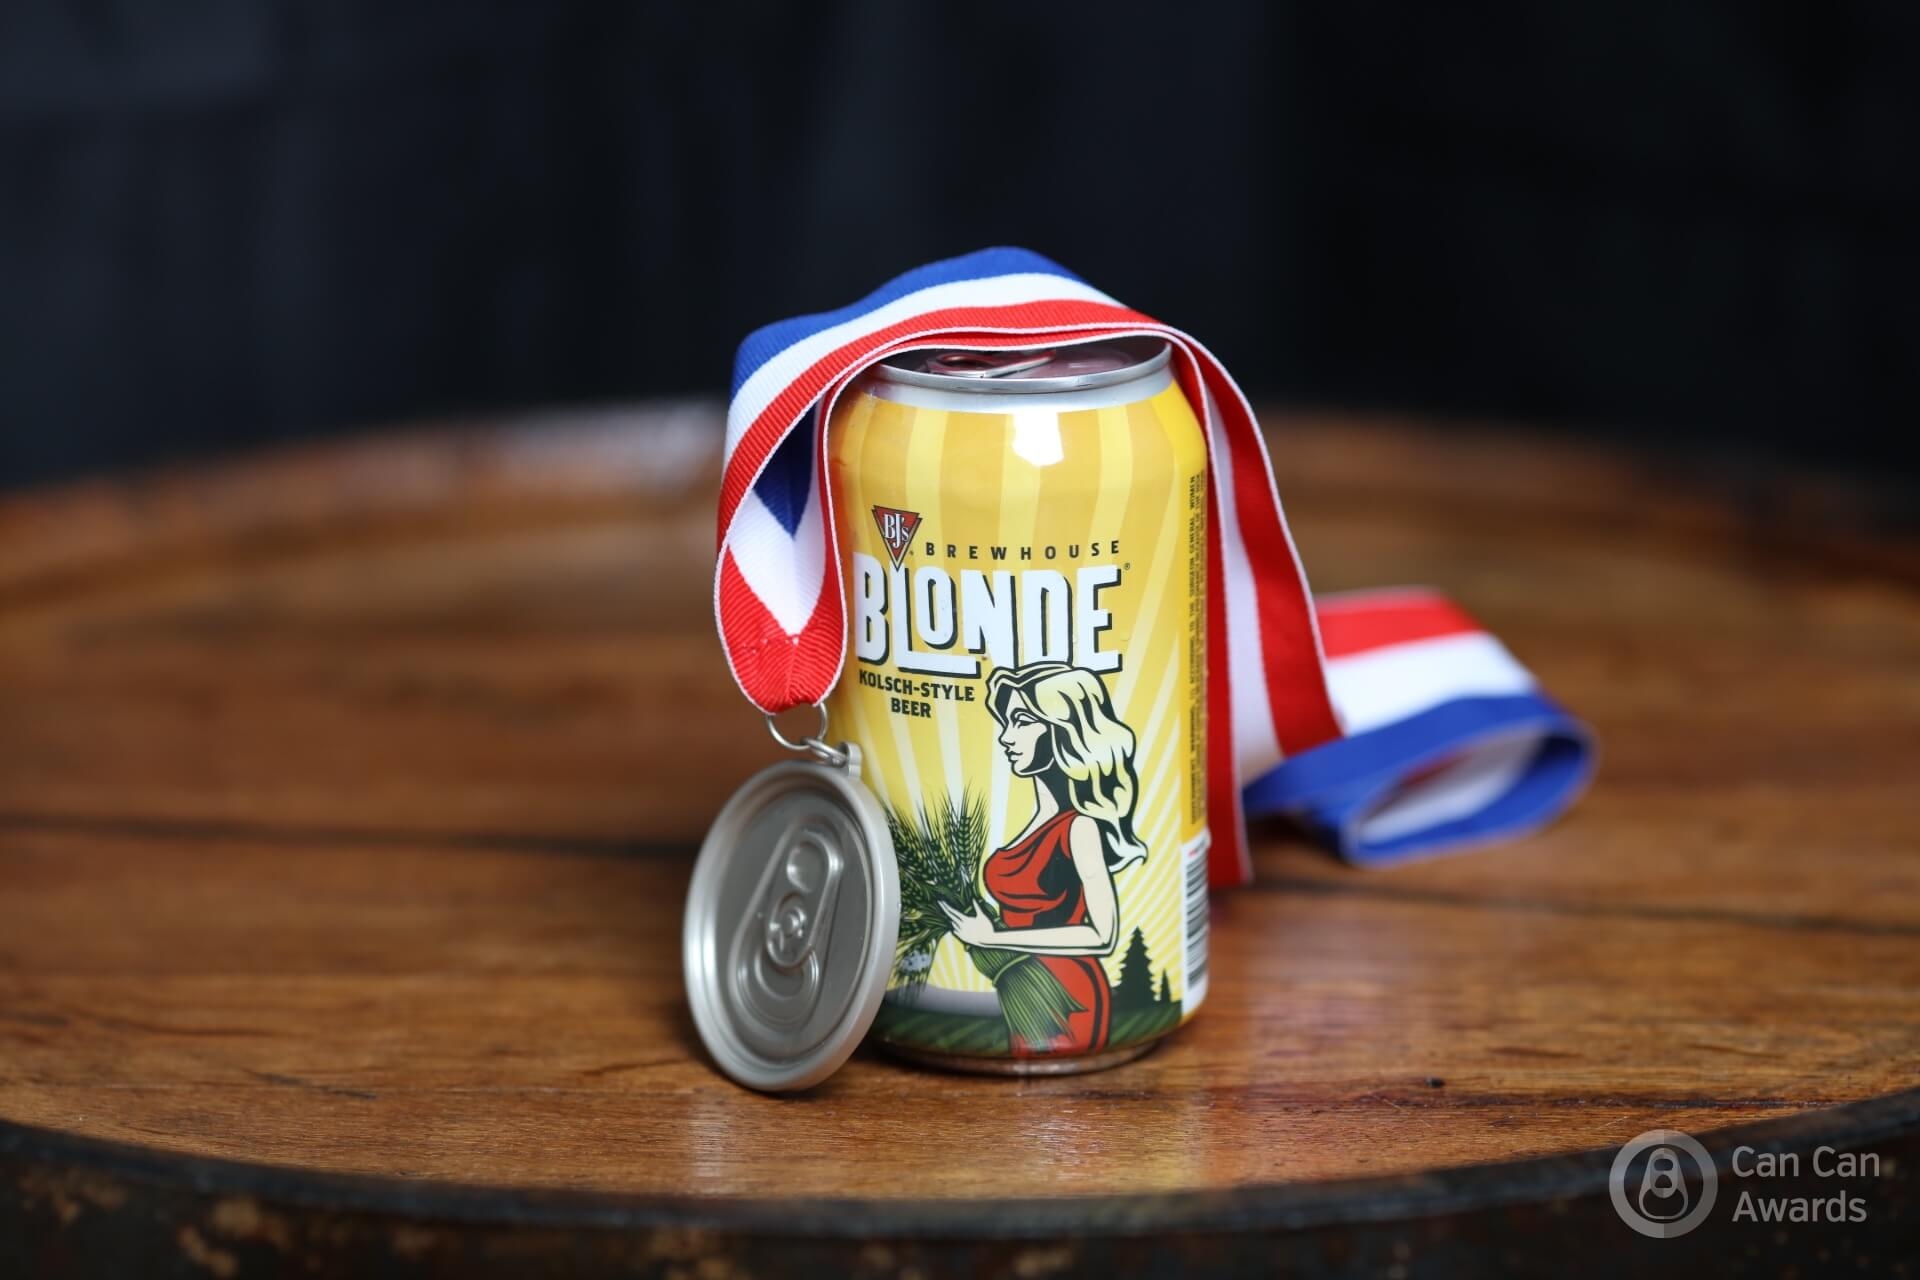 BJ's Brewhouse Blonde Wins a Silver Medal at the 2016 Can Can Awards